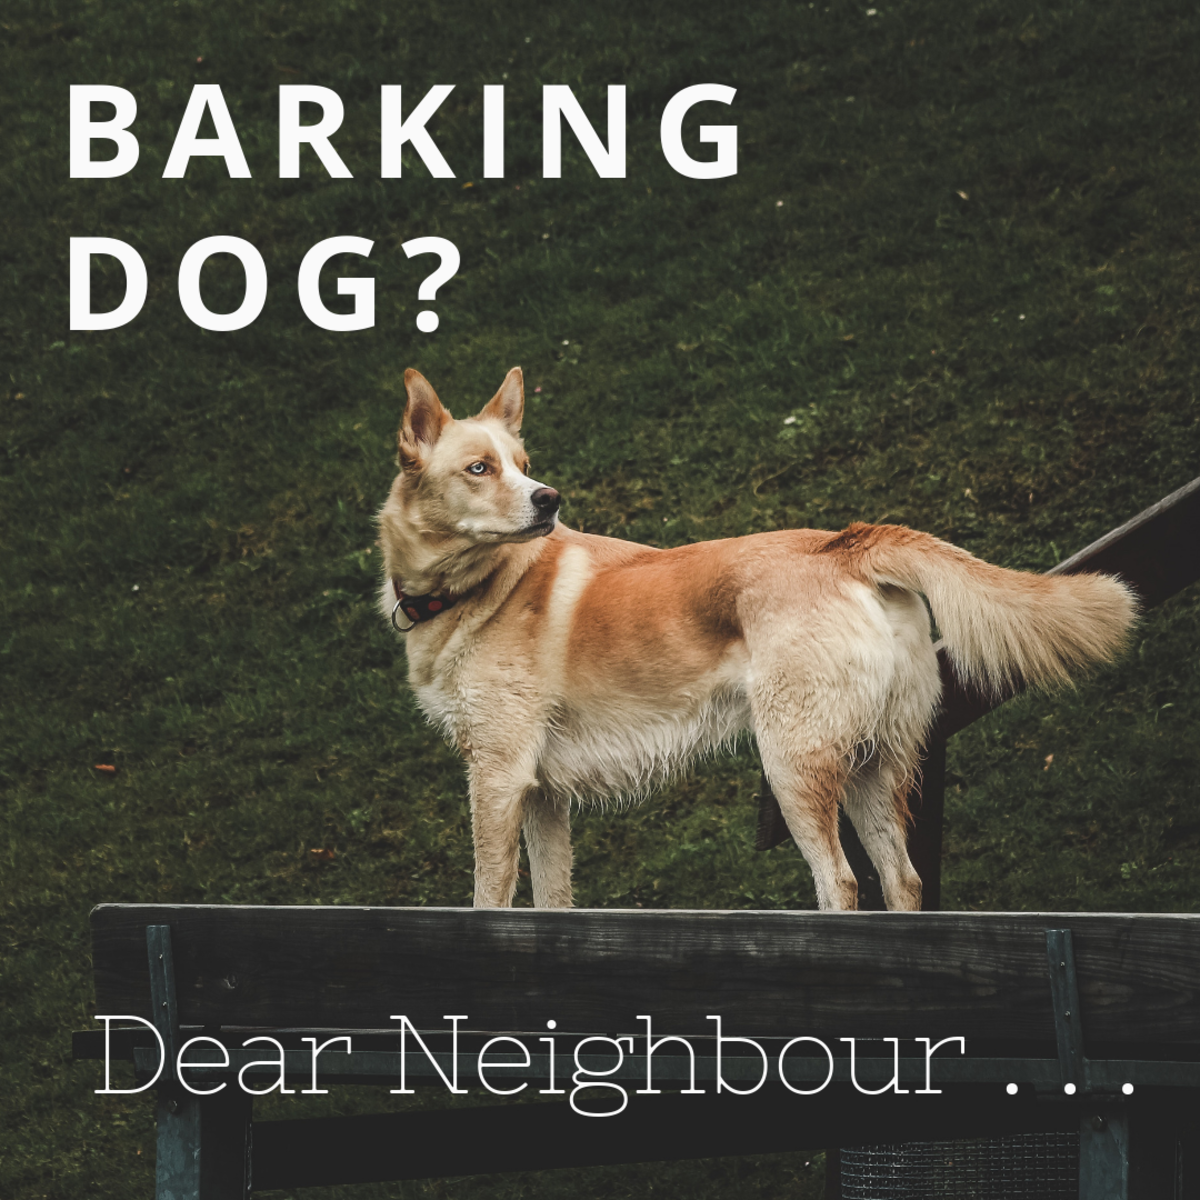 How to Confront Your Neighbour About Their Barking Dog